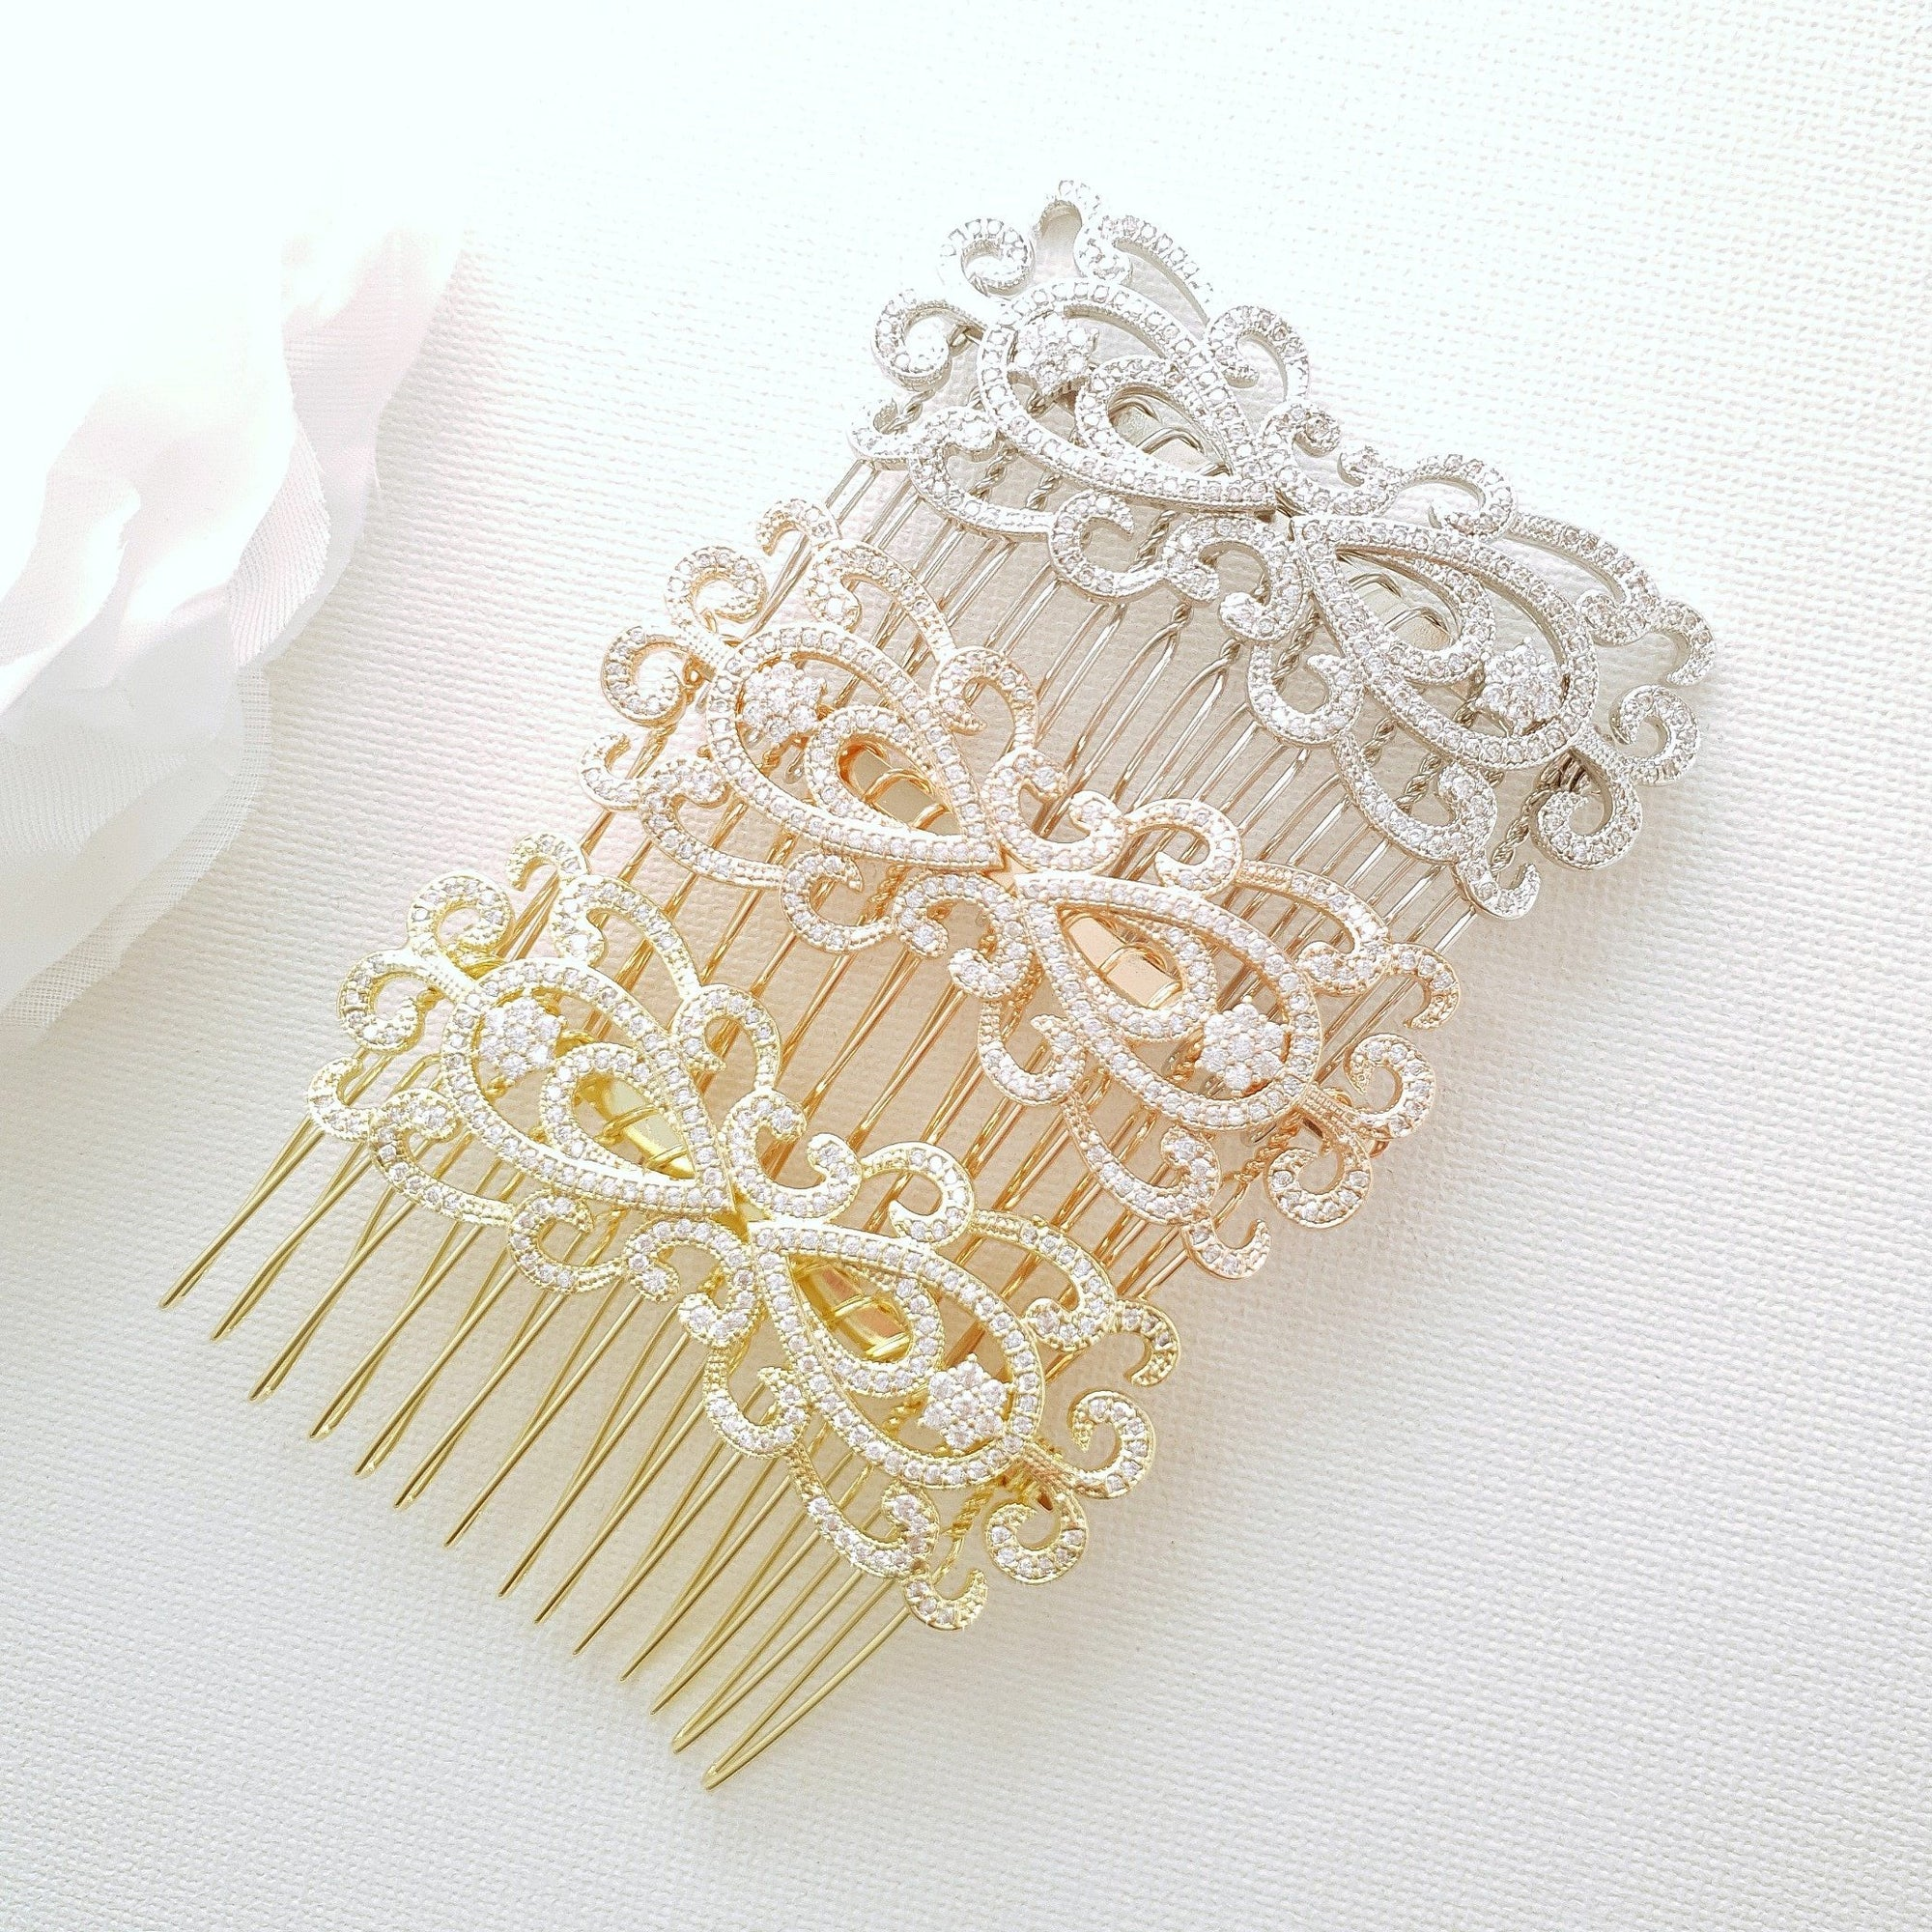 Gold Bridal & Wedding Hair Comb-Arletty - PoetryDesigns